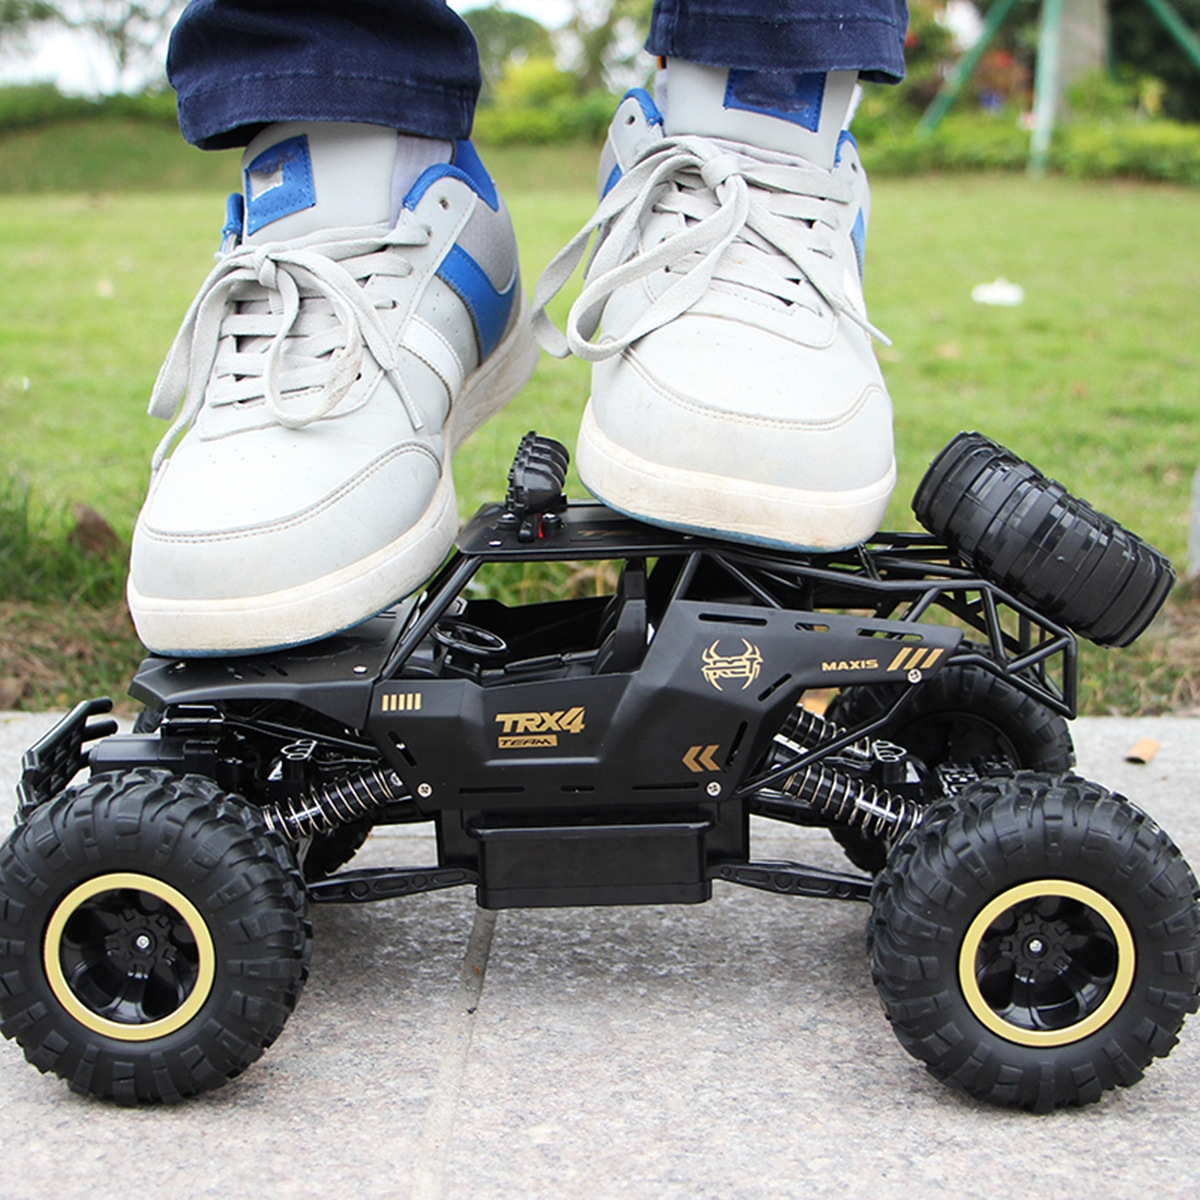 1/12 2.4G 2WD RC Car Crawler Truck Metal Body Vehicle Models Toys Indoor Outdoor Toys